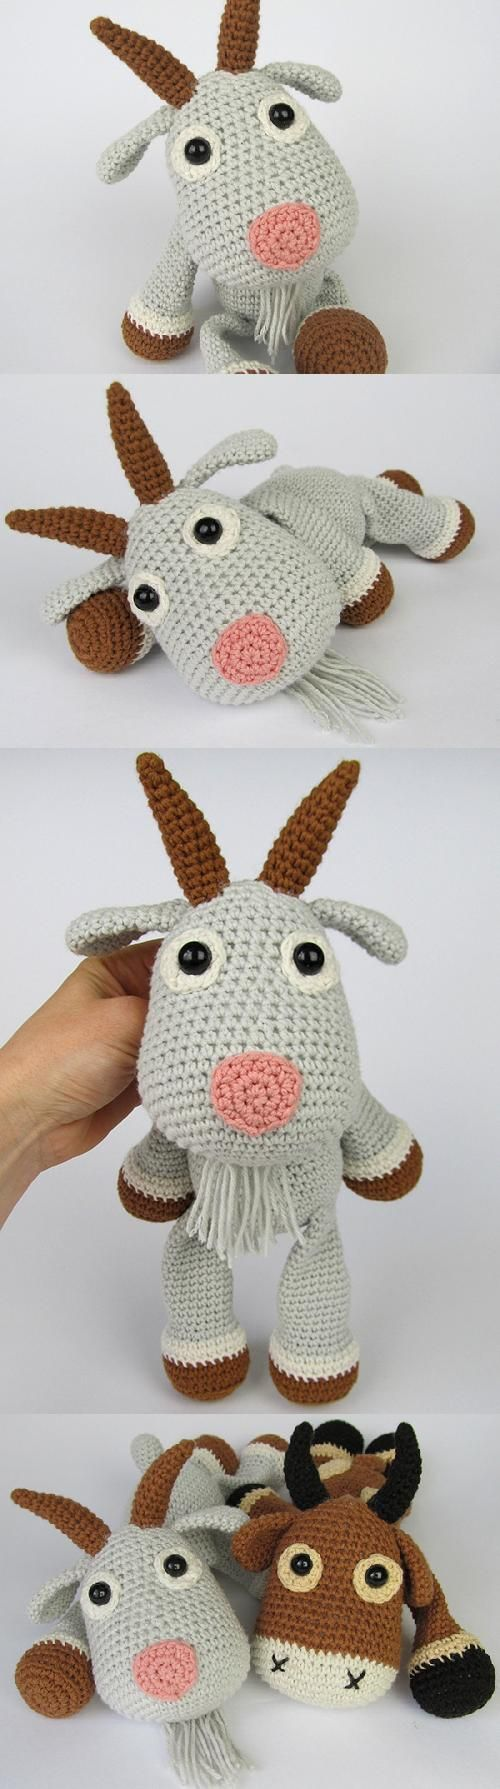 Found at Amigurumipatterns.net. Crochet goat. (Pattern available to purchase).